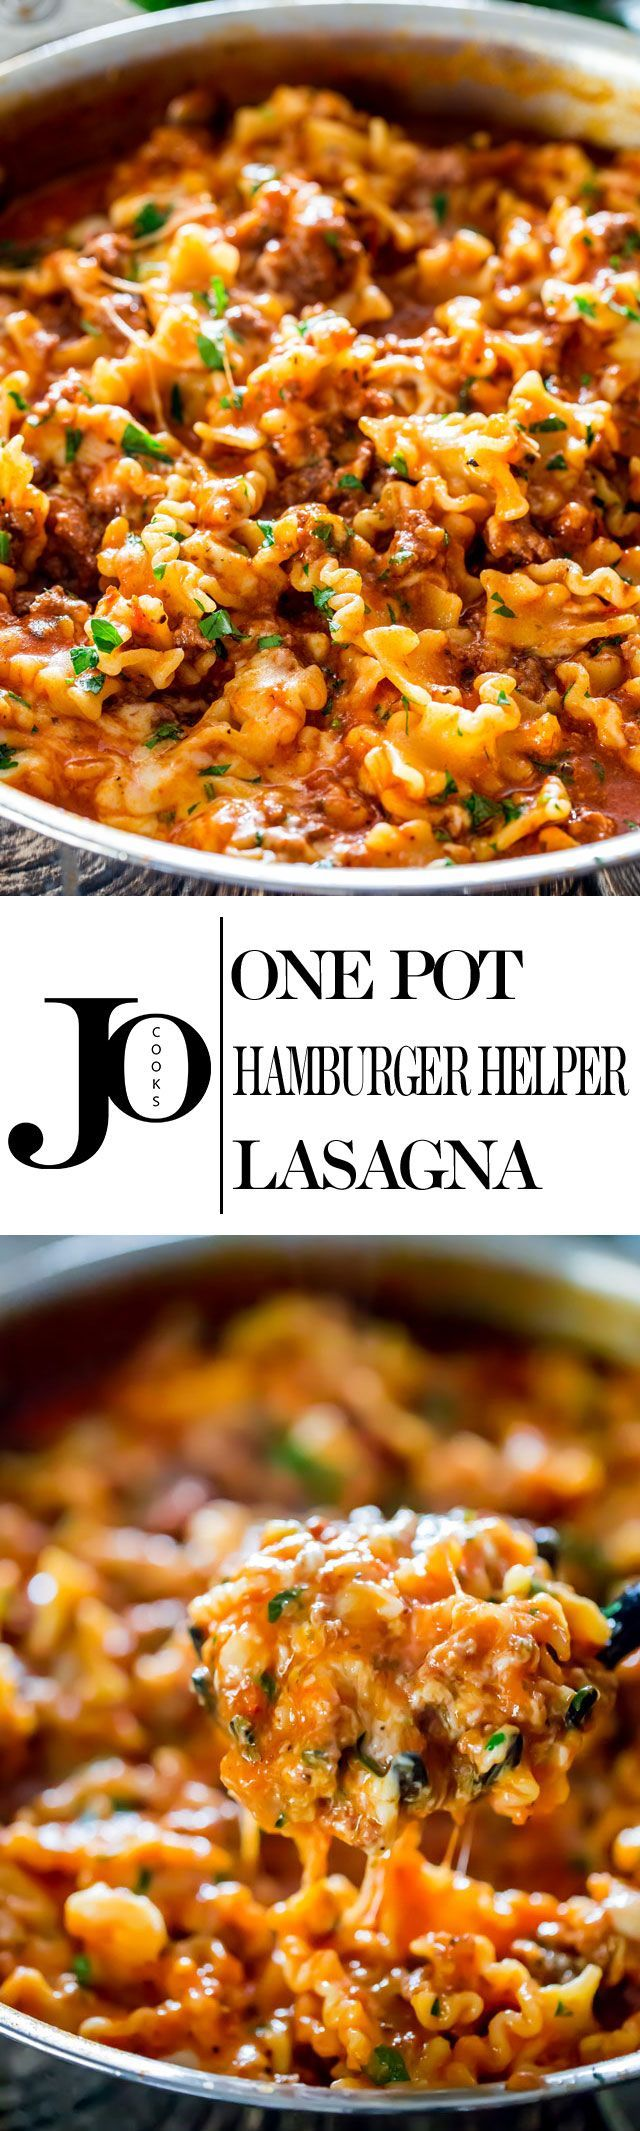 One Pot Hamburger Helper Lasagna - ditch the boxed mix Hamburger Helper and make your own, lasagna style, much healthier and homemade. Comfort food at its finest.